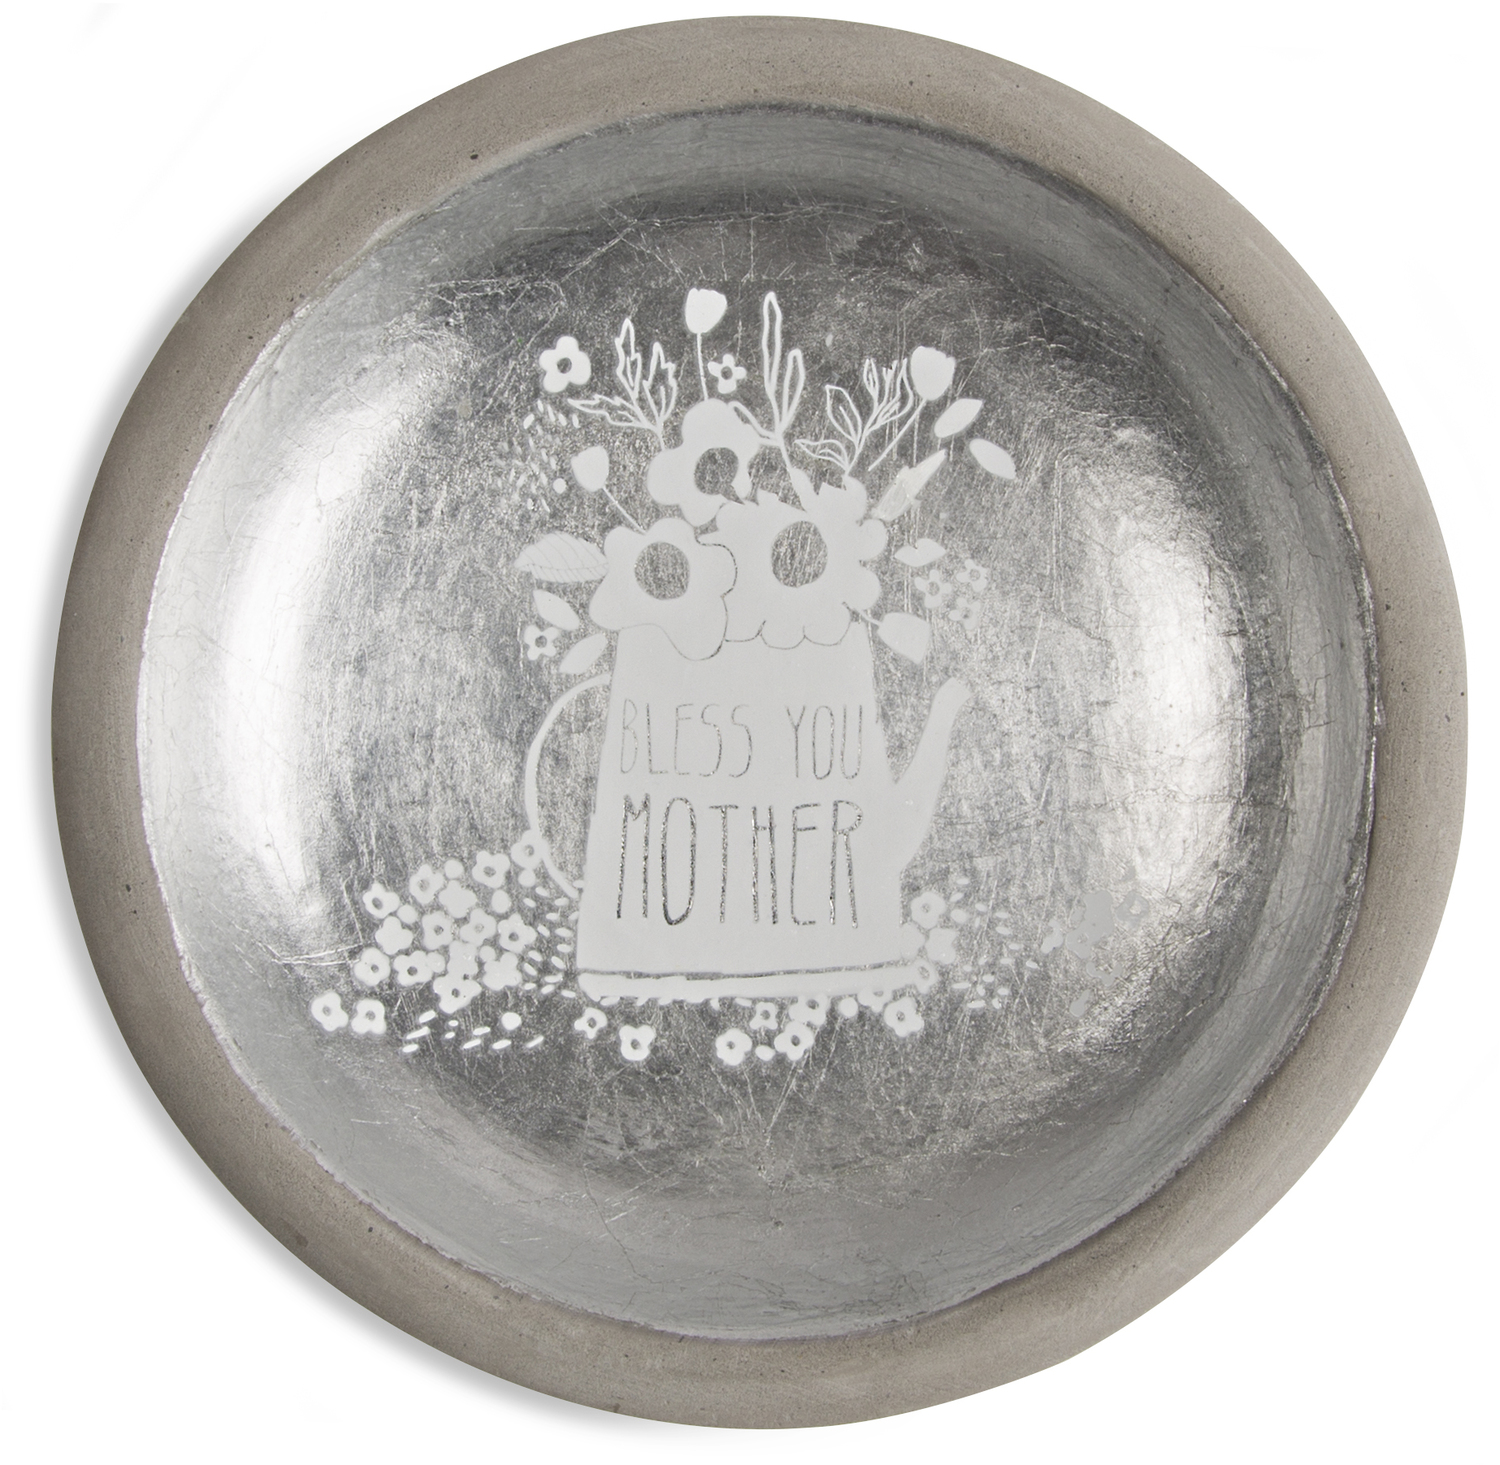 "Mother by Bless My Bloomers - Mother - 5"" Cement Keepsake Dish"